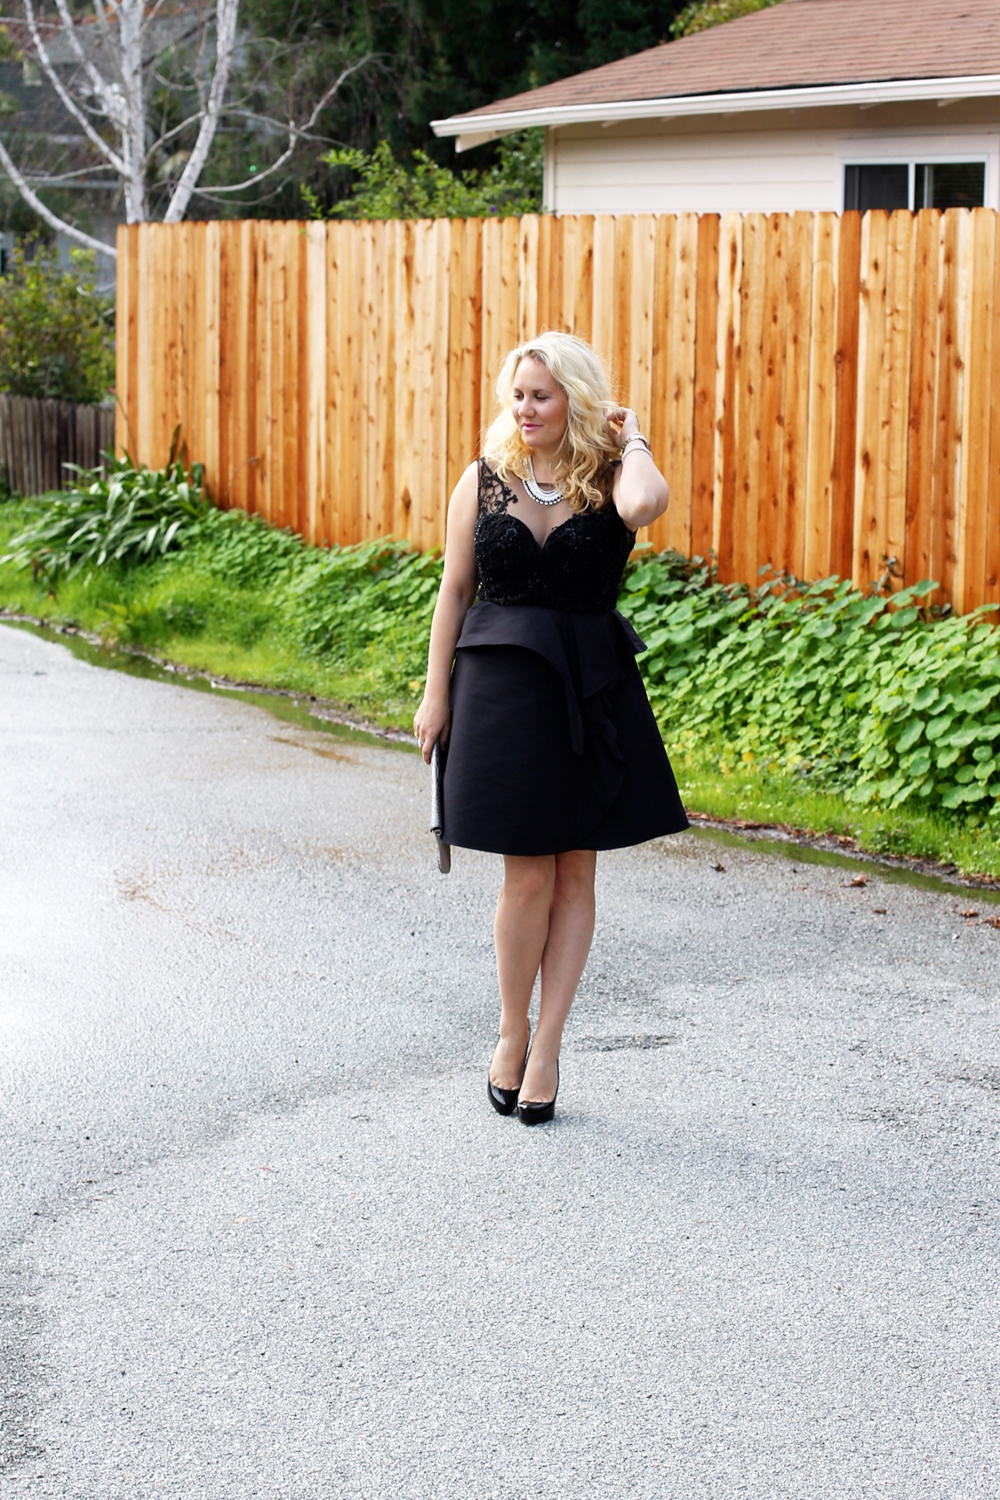 warmest-wishes-this-holiday-season-have-need-want-holiday-style-lbd-outfit-inspiration-9